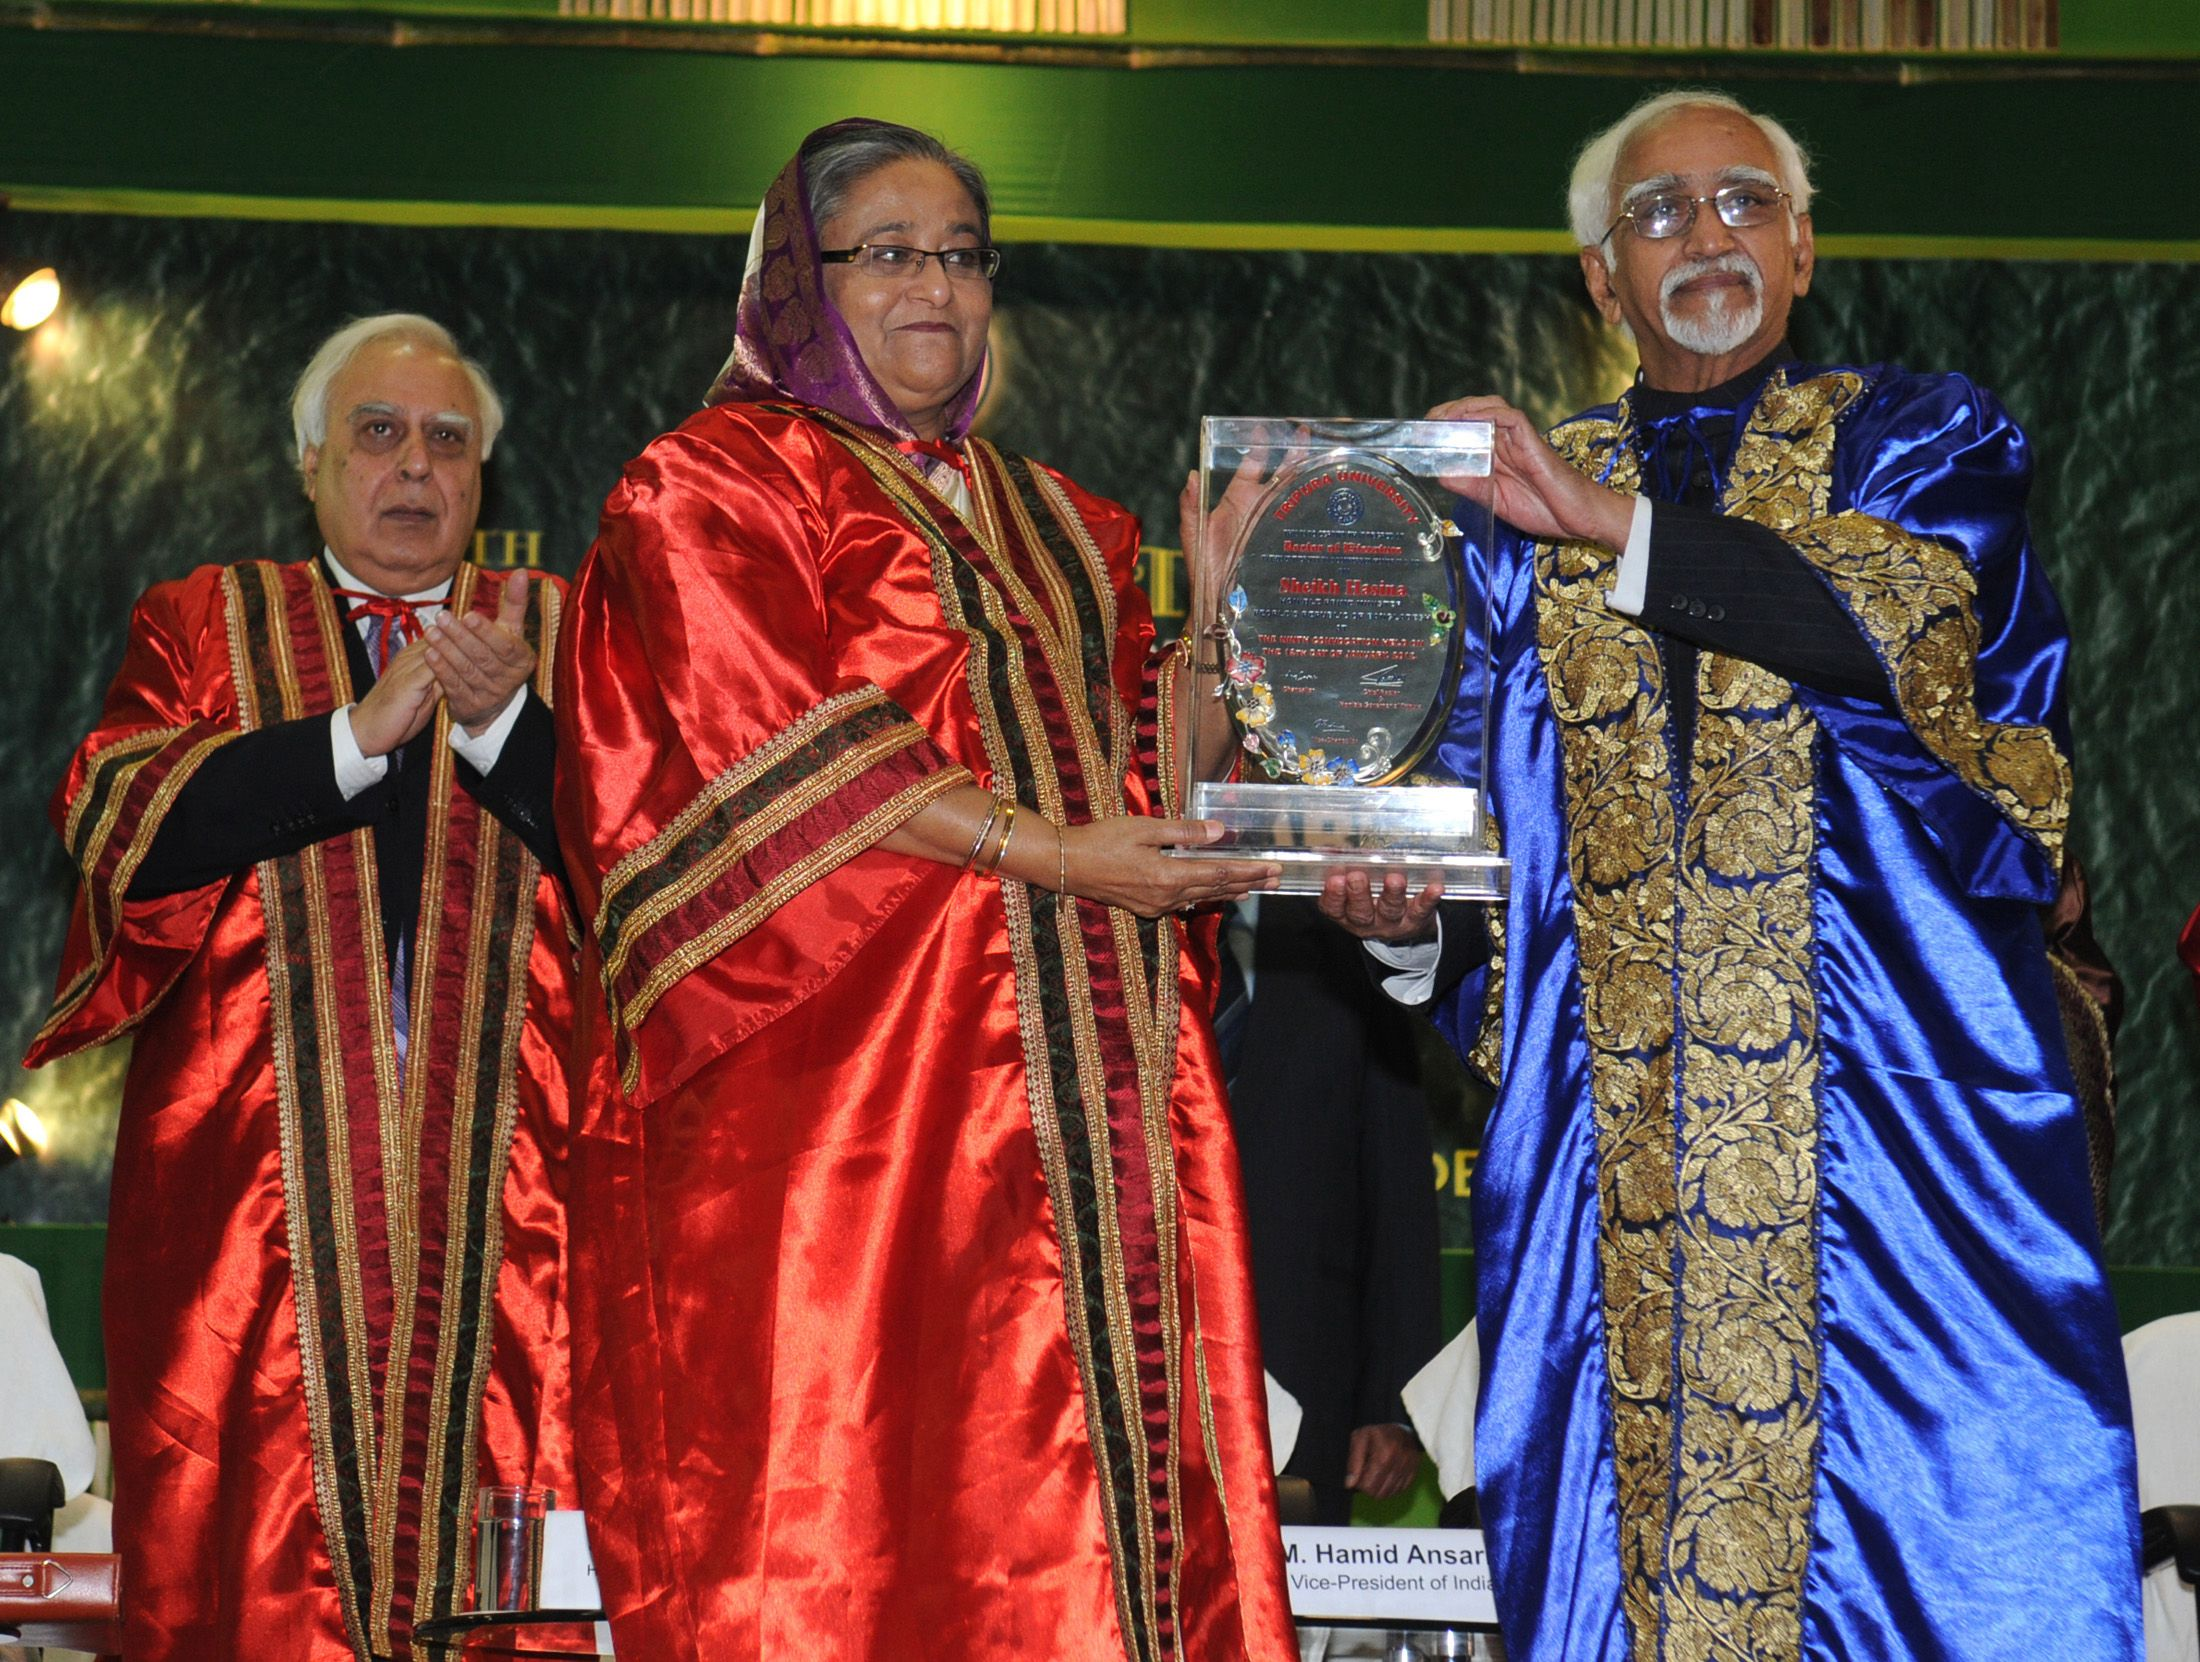 Horonary Doctorate to Sheikh Hasina